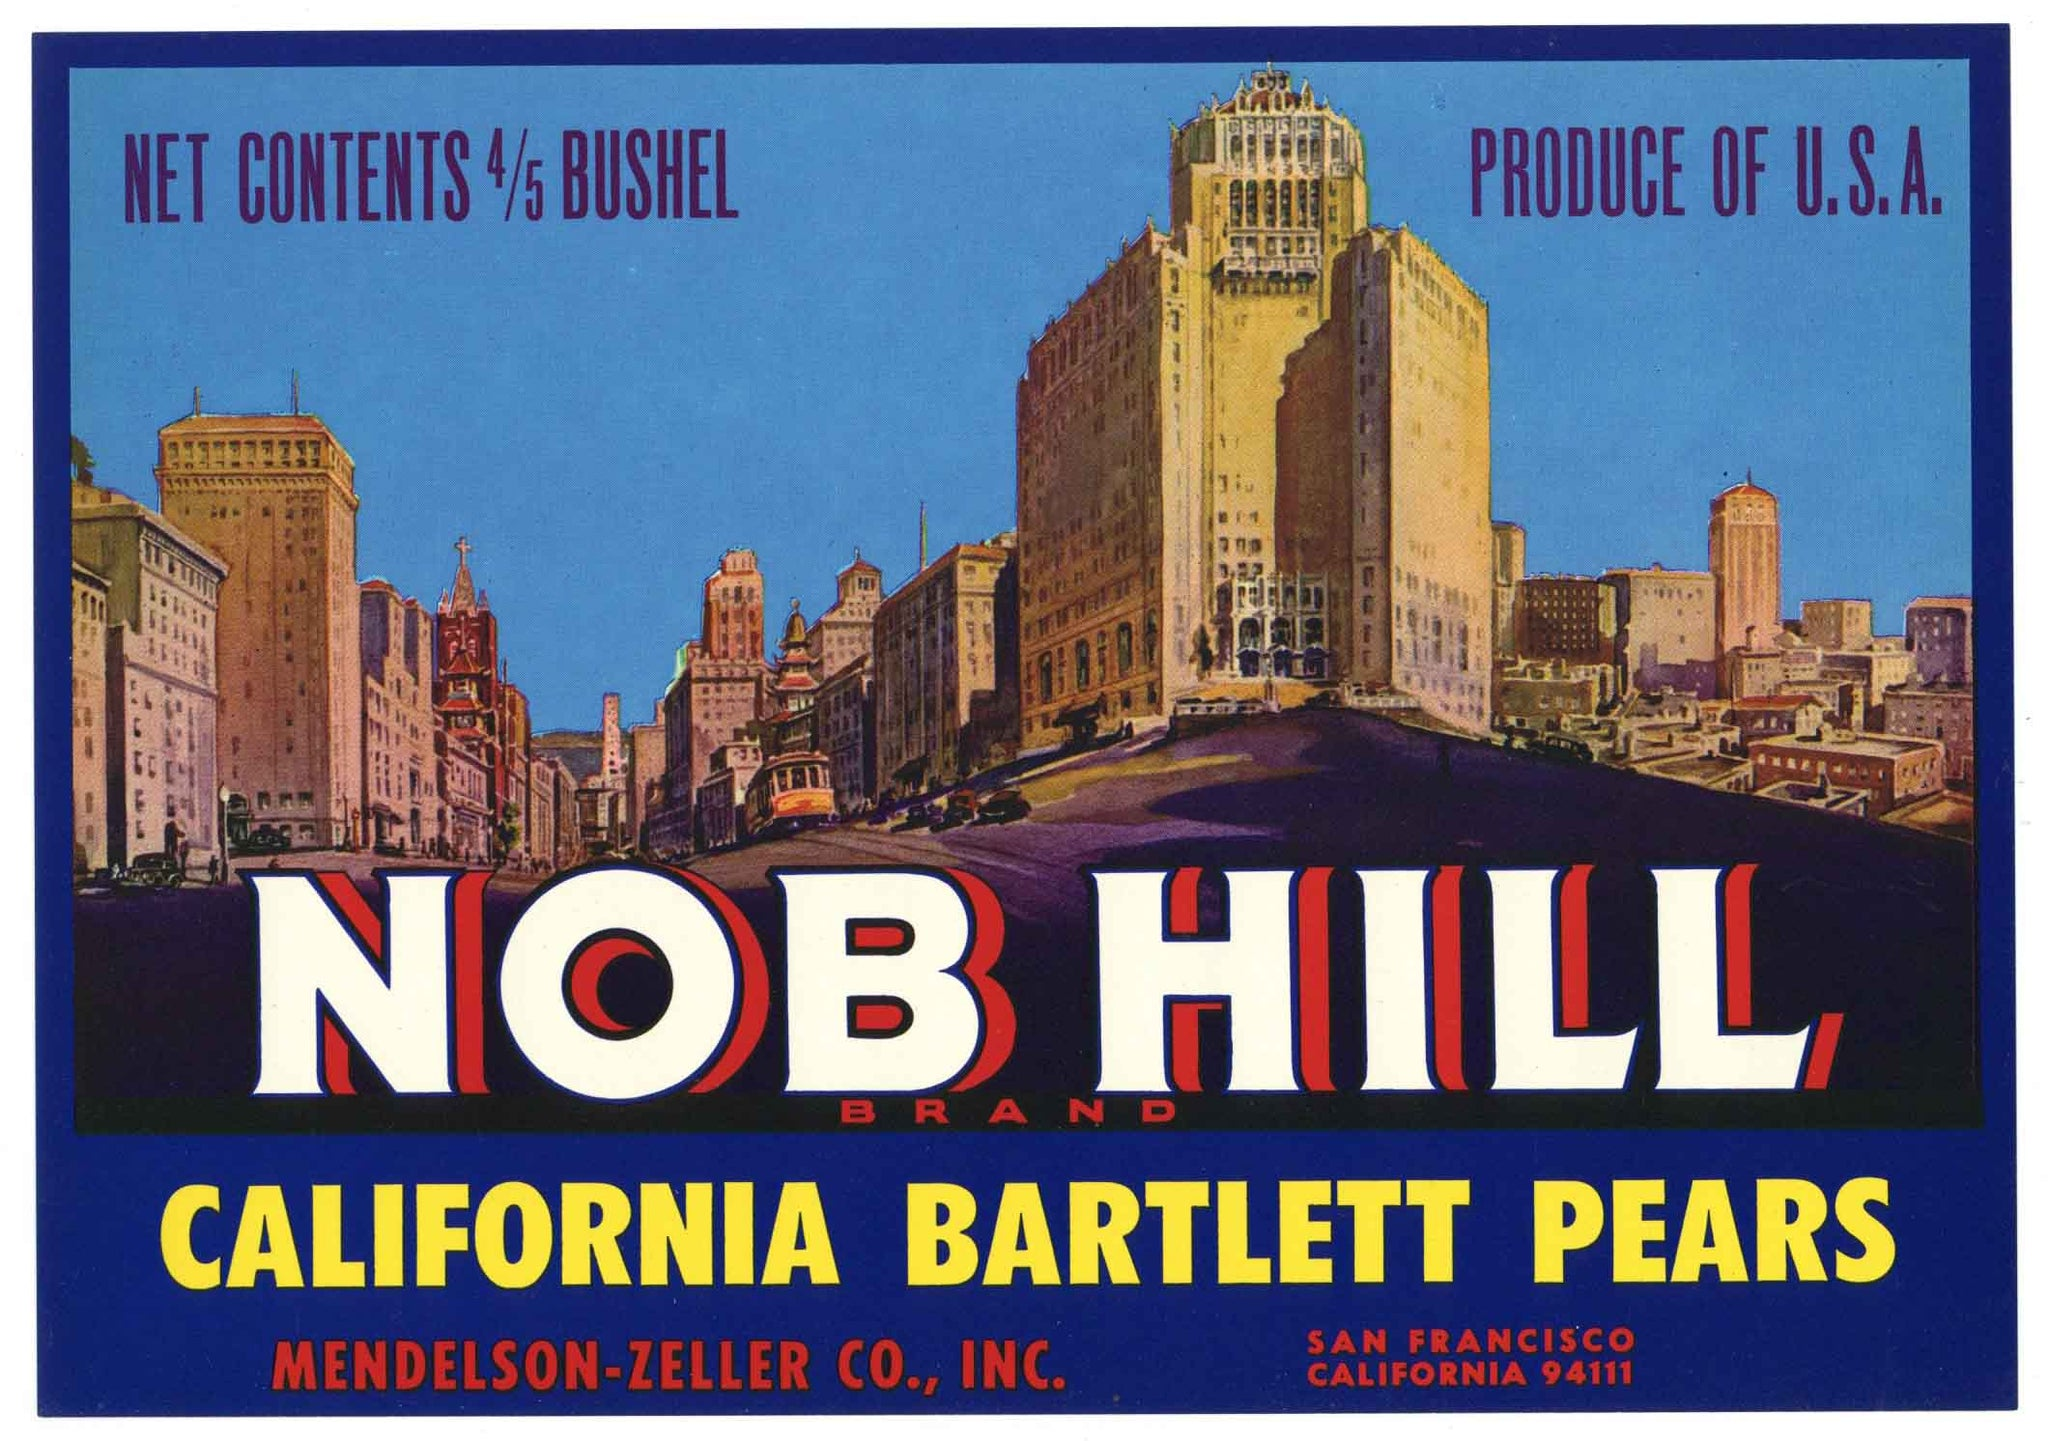 Nob Hill Brand Vintage Pear Crate Label, zipcode